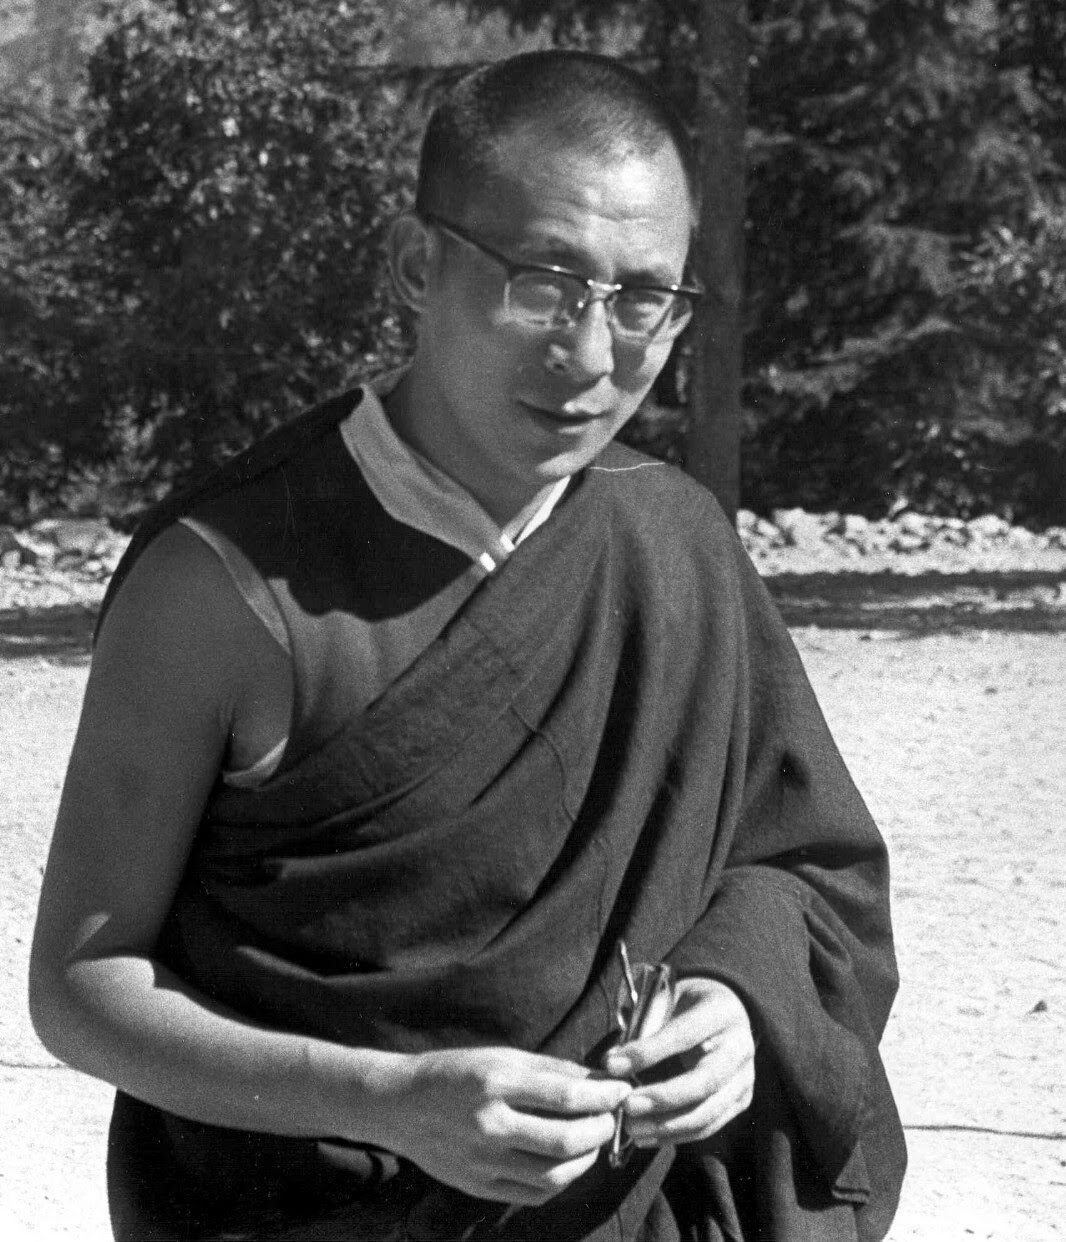 dalai lama essay Essay the dalai lama: leader in exile among world leaders, there is no one like his holiness the dalai lama, religious and political leader of tibet and winner of the 1989 nobel peace prize.